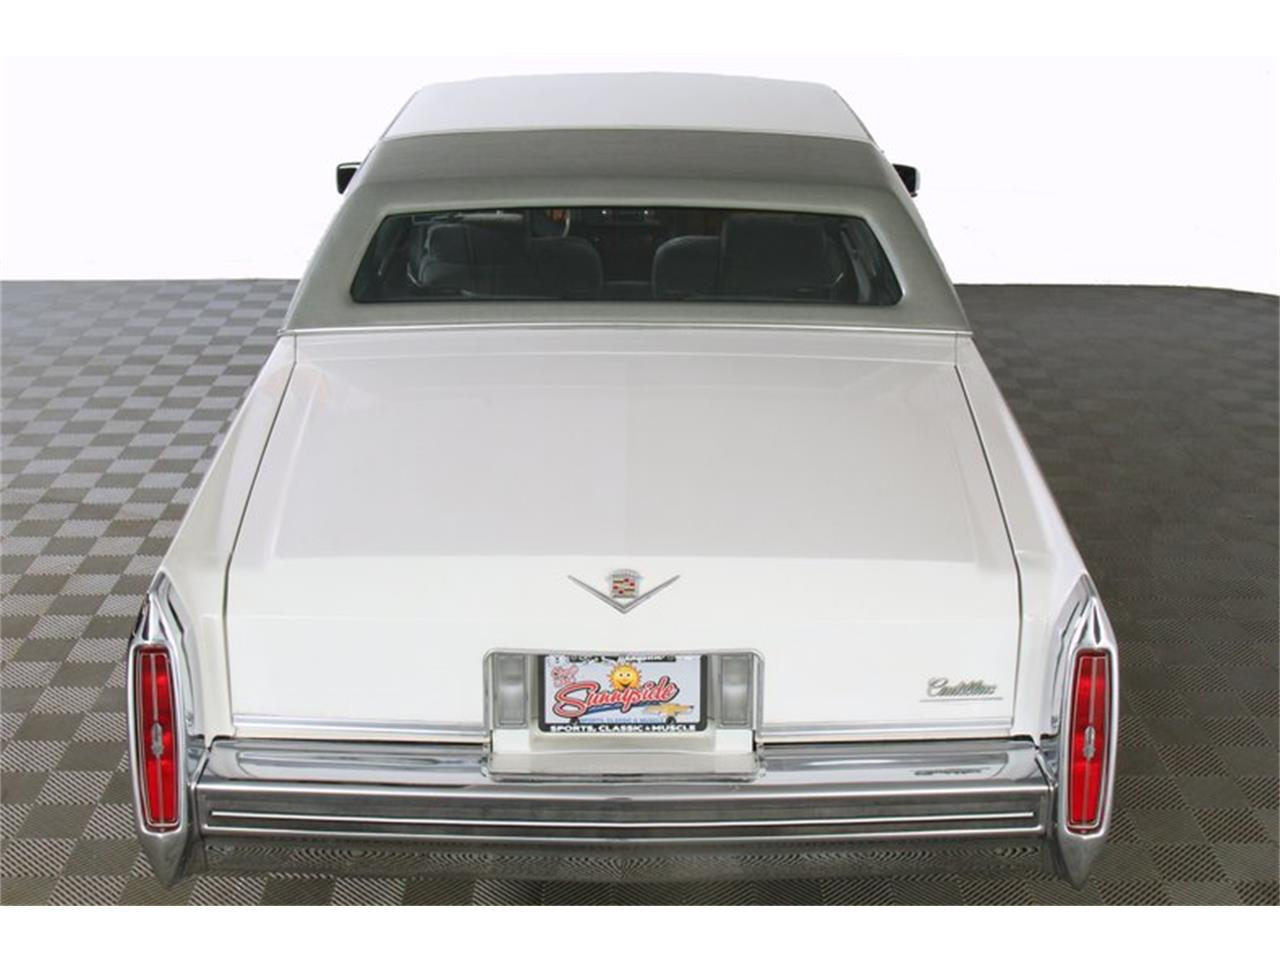 1983 Cadillac Coupe (CC-1352346) for sale in Elyria, Ohio